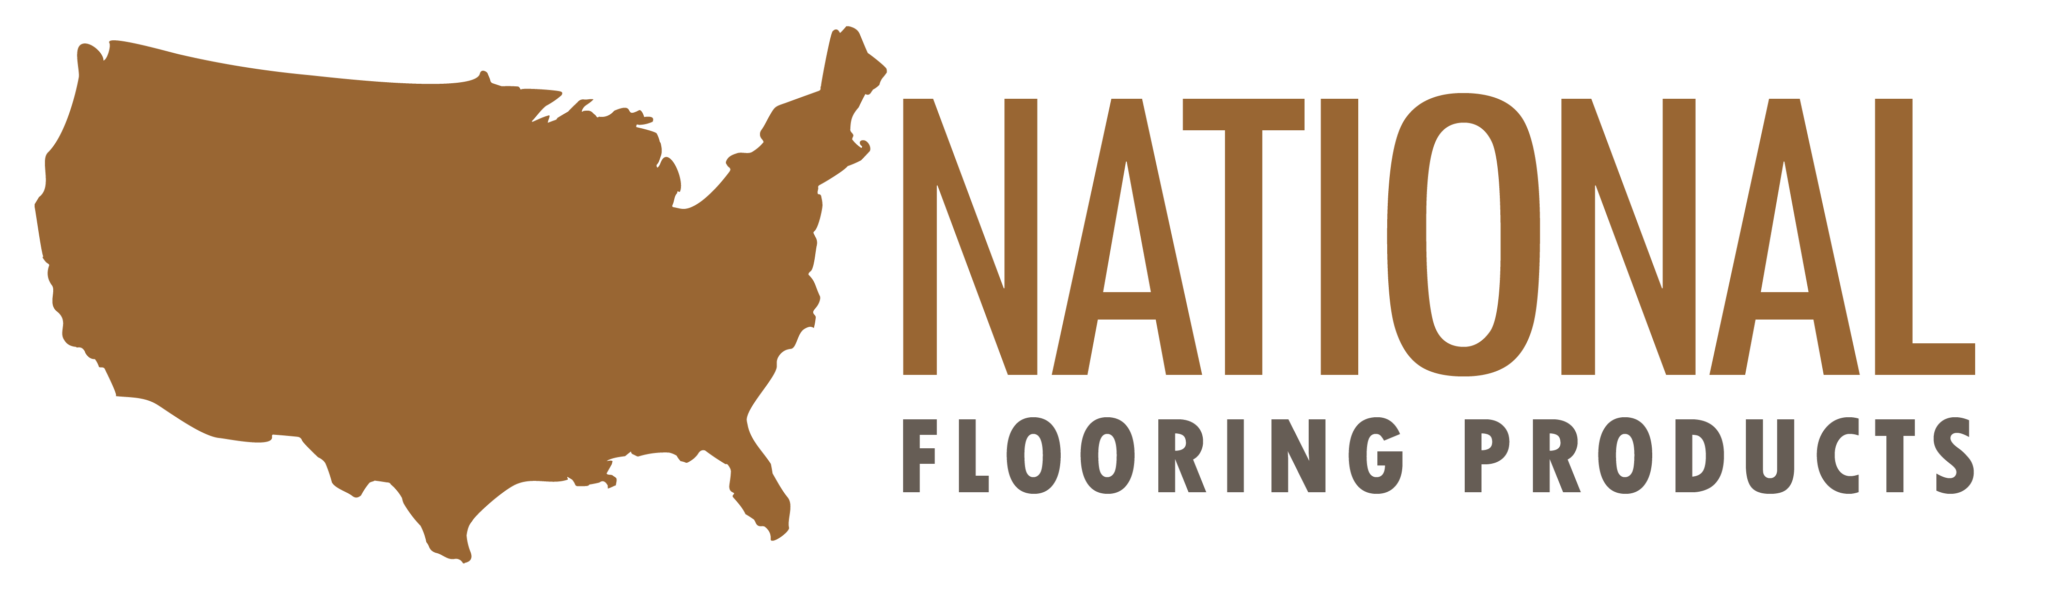 National Flooring Products